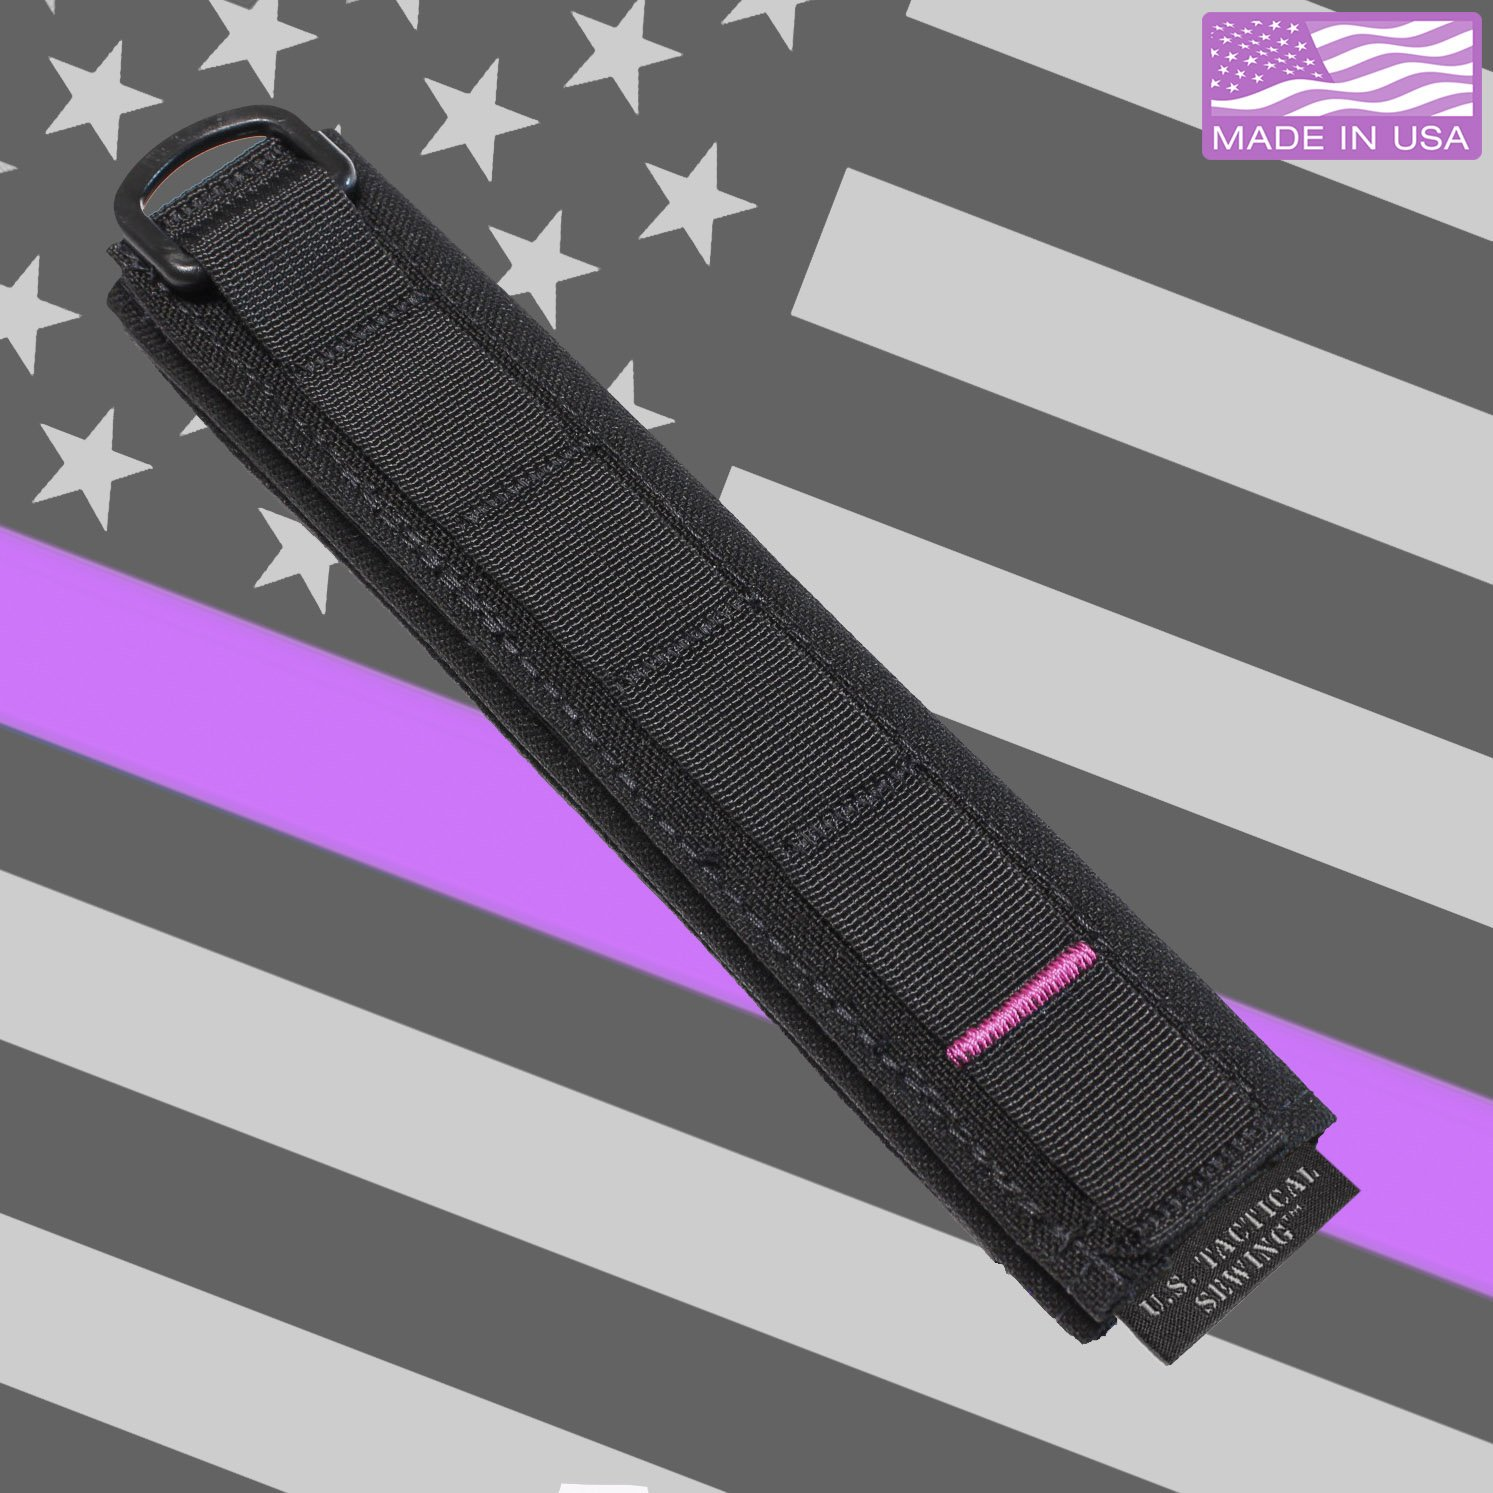 U.S. Tactical Sewing USTS Advanced Modular Headset Cover - Made in The USA (Black w/Pink Accent) by U.S. Tactical Sewing